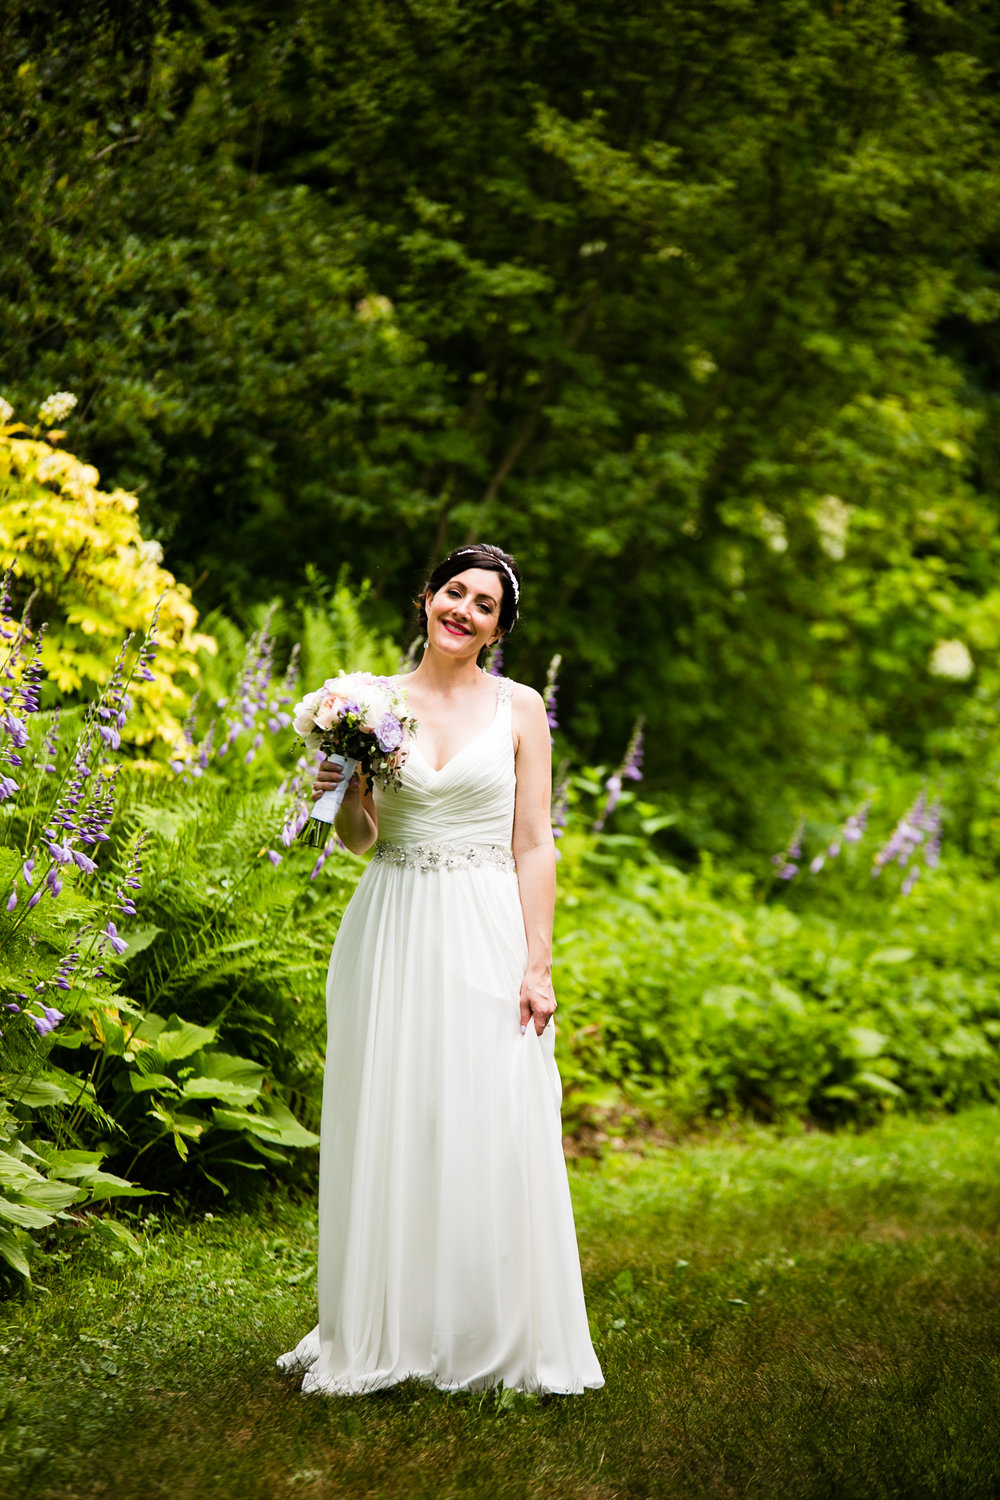 TYLER ARBORETUM WEDDING PHOTOGRAPHY LOVESTRUCK PICTURES-026.jpg